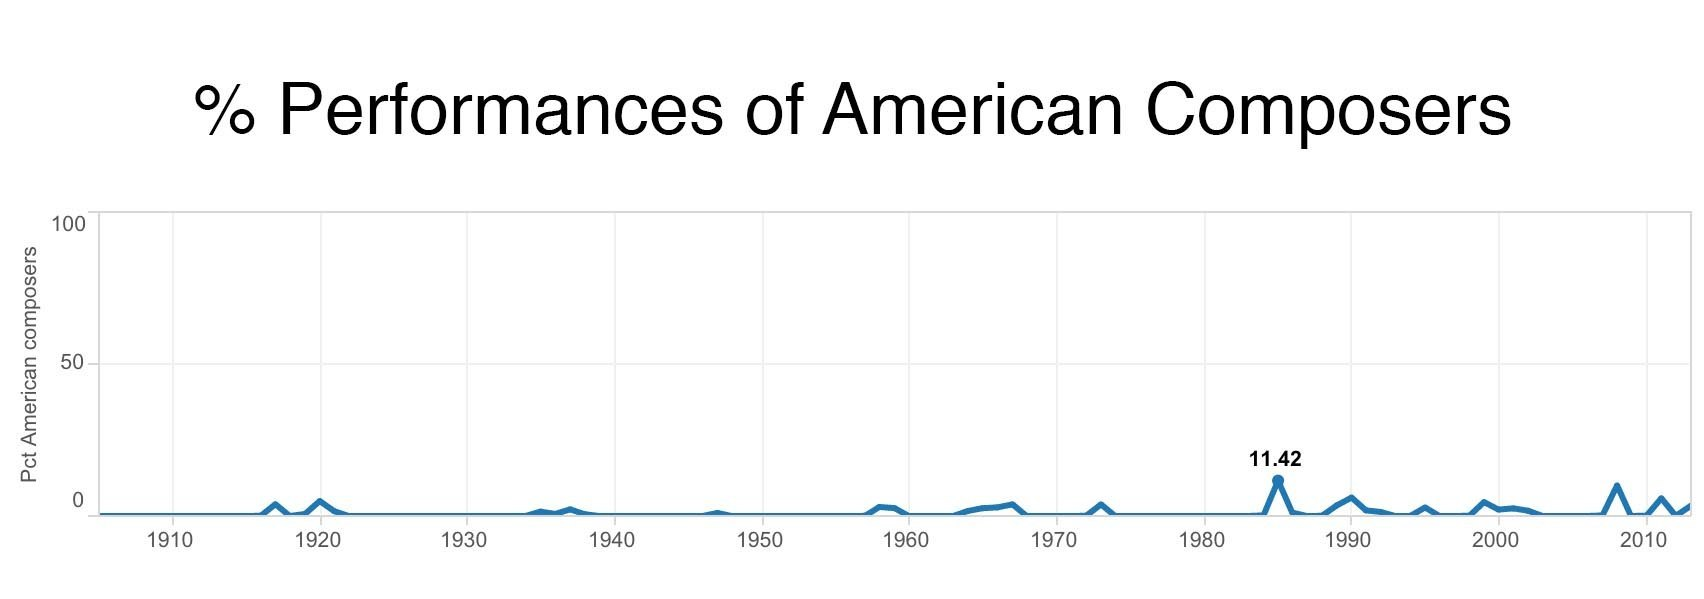 percent_performances_american_composers